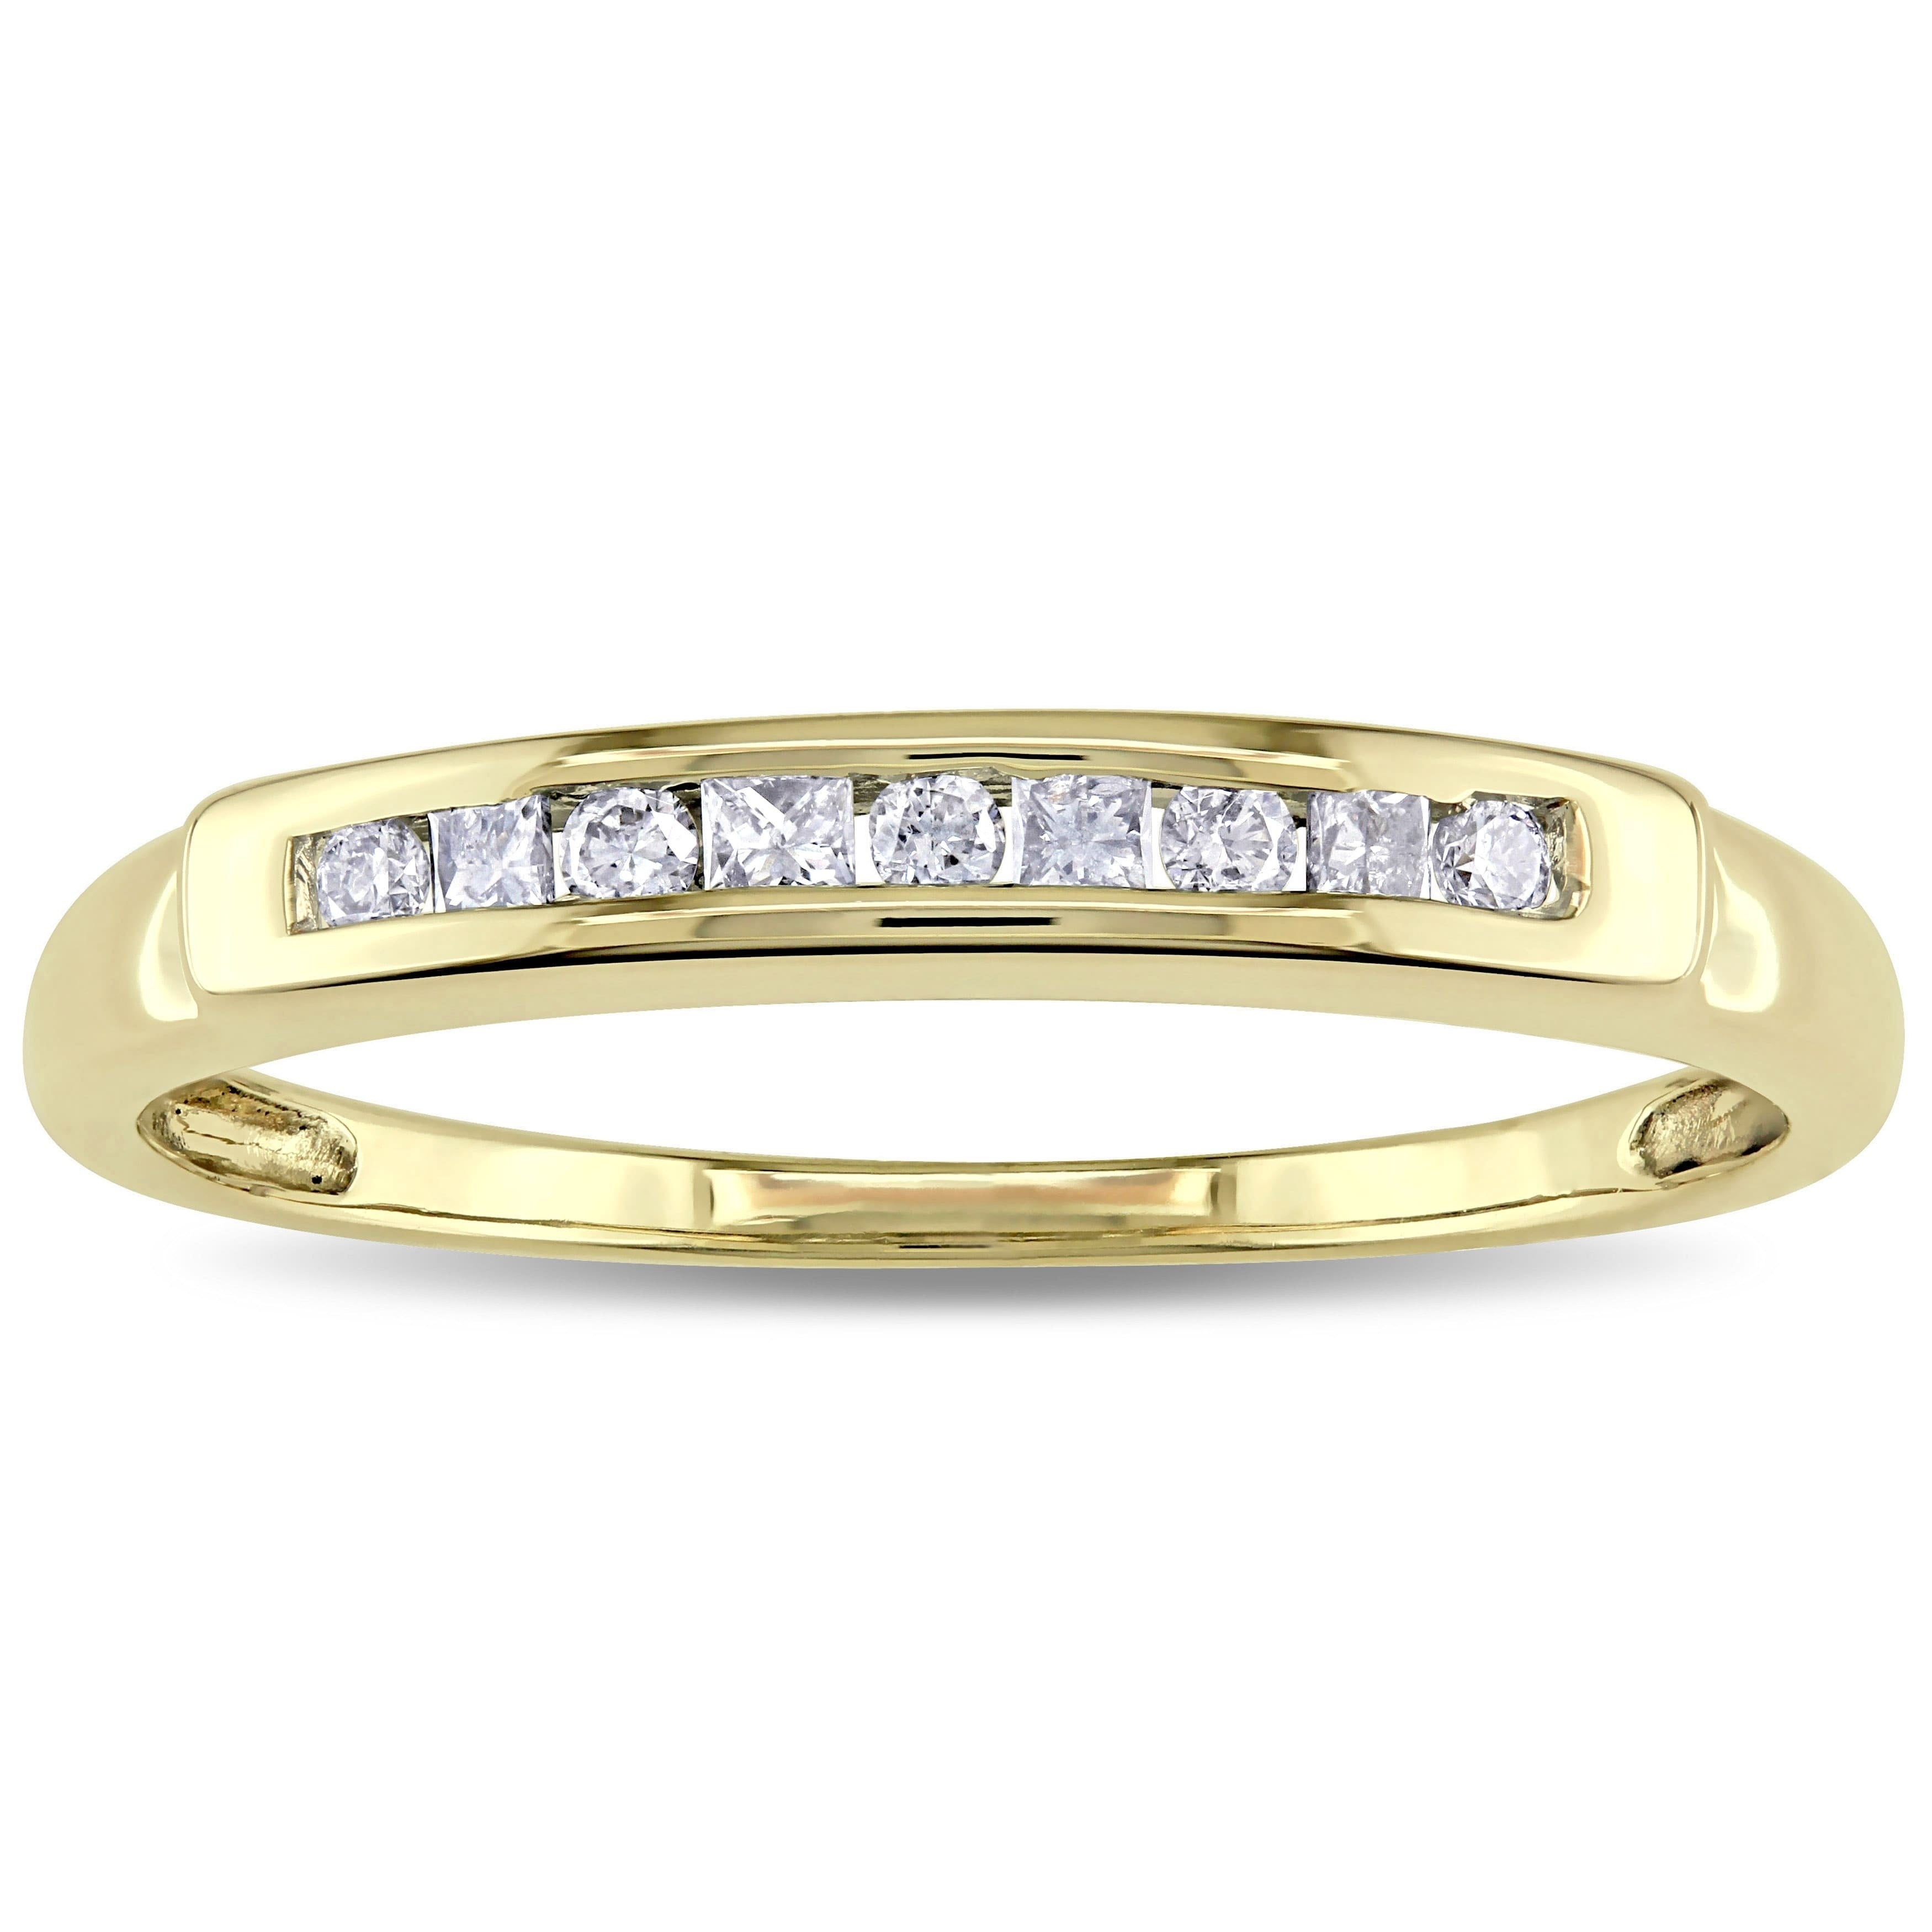 Miadora 14K Yellow Gold 1/5Ct Tdw Round And Princess Cut Channel Set Diamond Anniversary Band – White Throughout 2020 Princess Cut And Round Diamond Anniversary Bands In White Gold (Gallery 12 of 25)